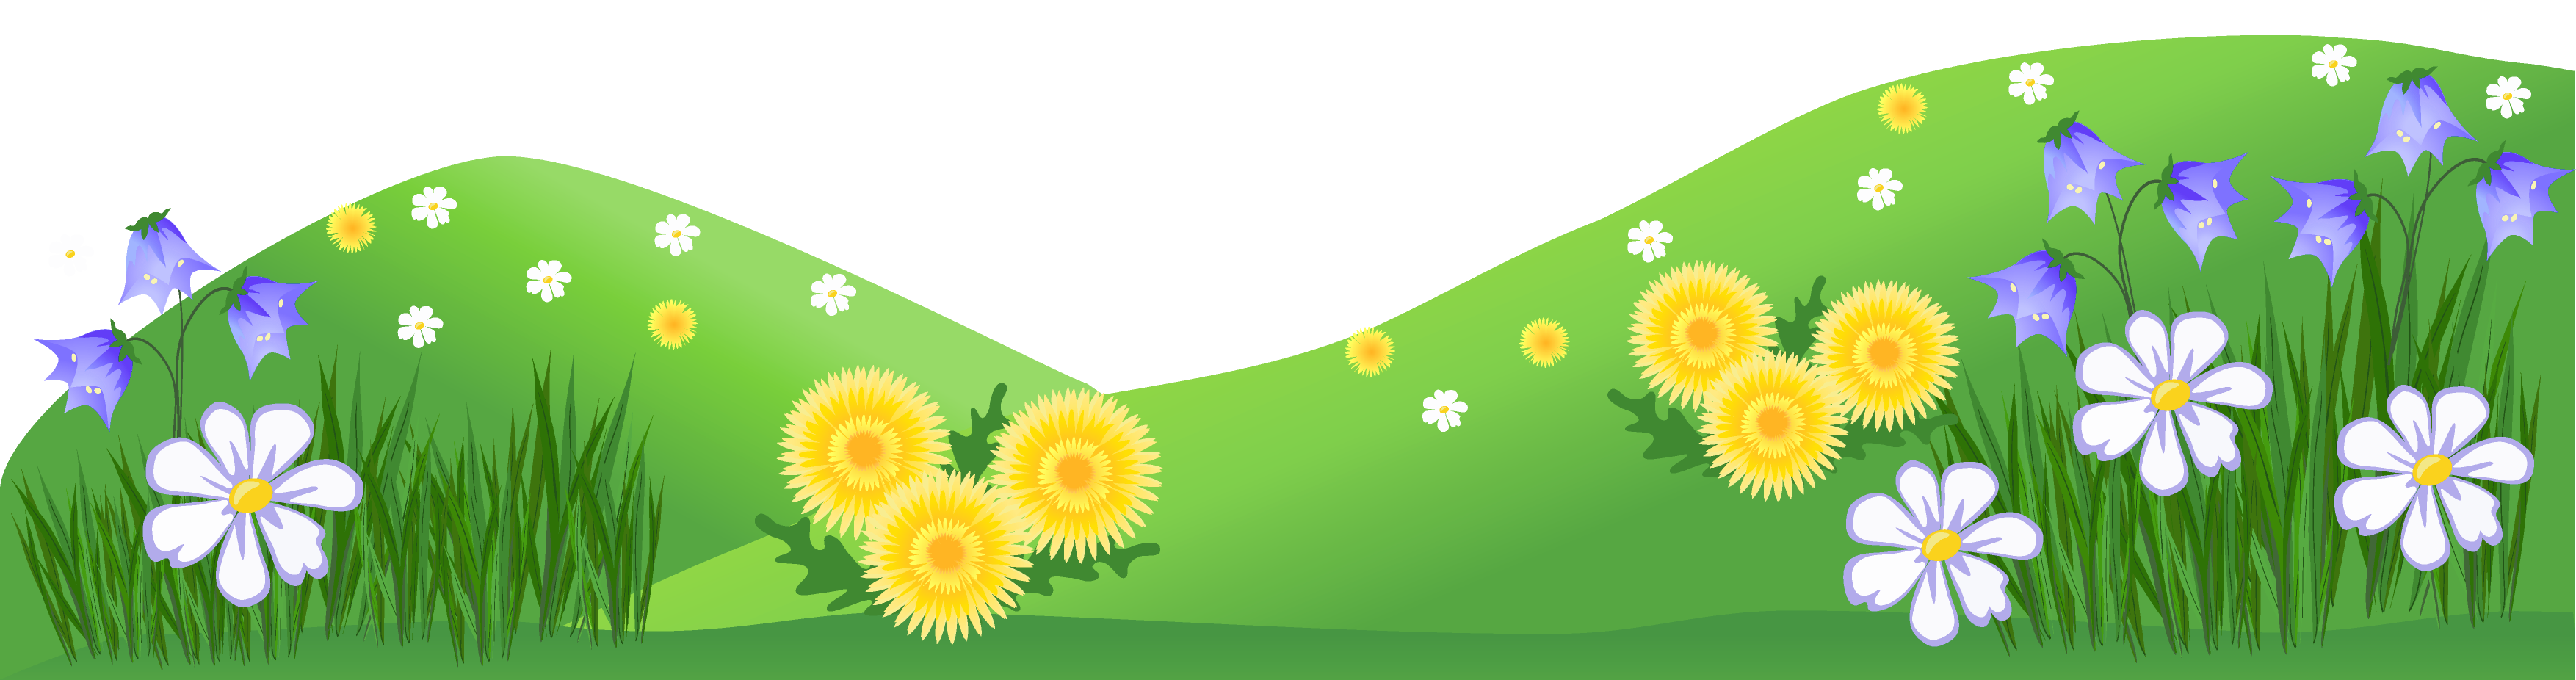 Grass_Ground_with_Flowers_Clipart.png?m=1399672800.